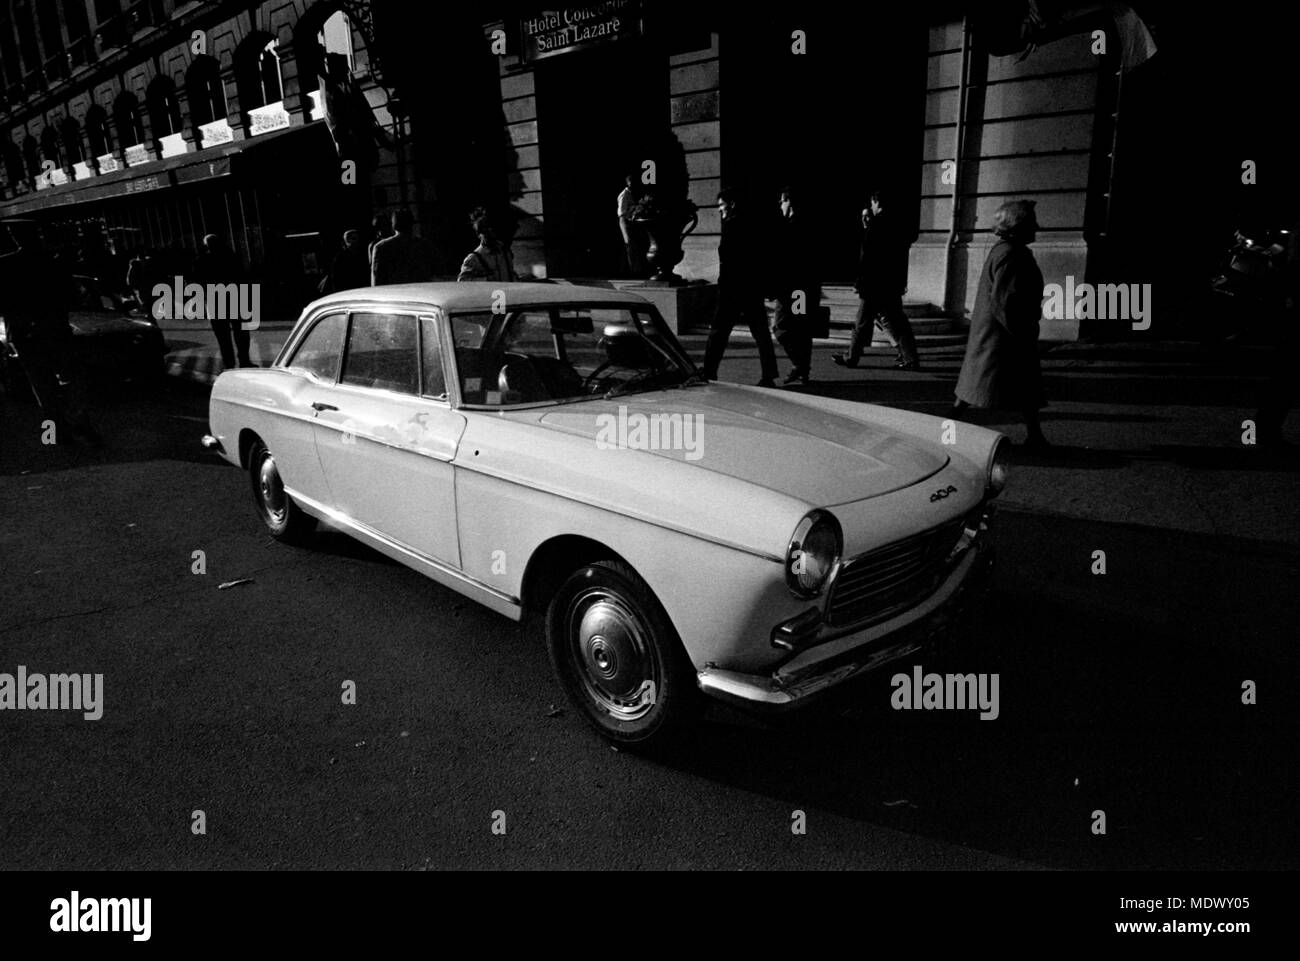 AJAXNETPHOTO. PARIS, FRANCE. - RARE CLASSIC - A PUGEOT 404 TWO-DOOR SALOON PARKED ON THE STREET NEAR ST.LAZARE. PHOTO:JONATHAN EASTLAND/AJAX REF:921015_33001 - Stock Image